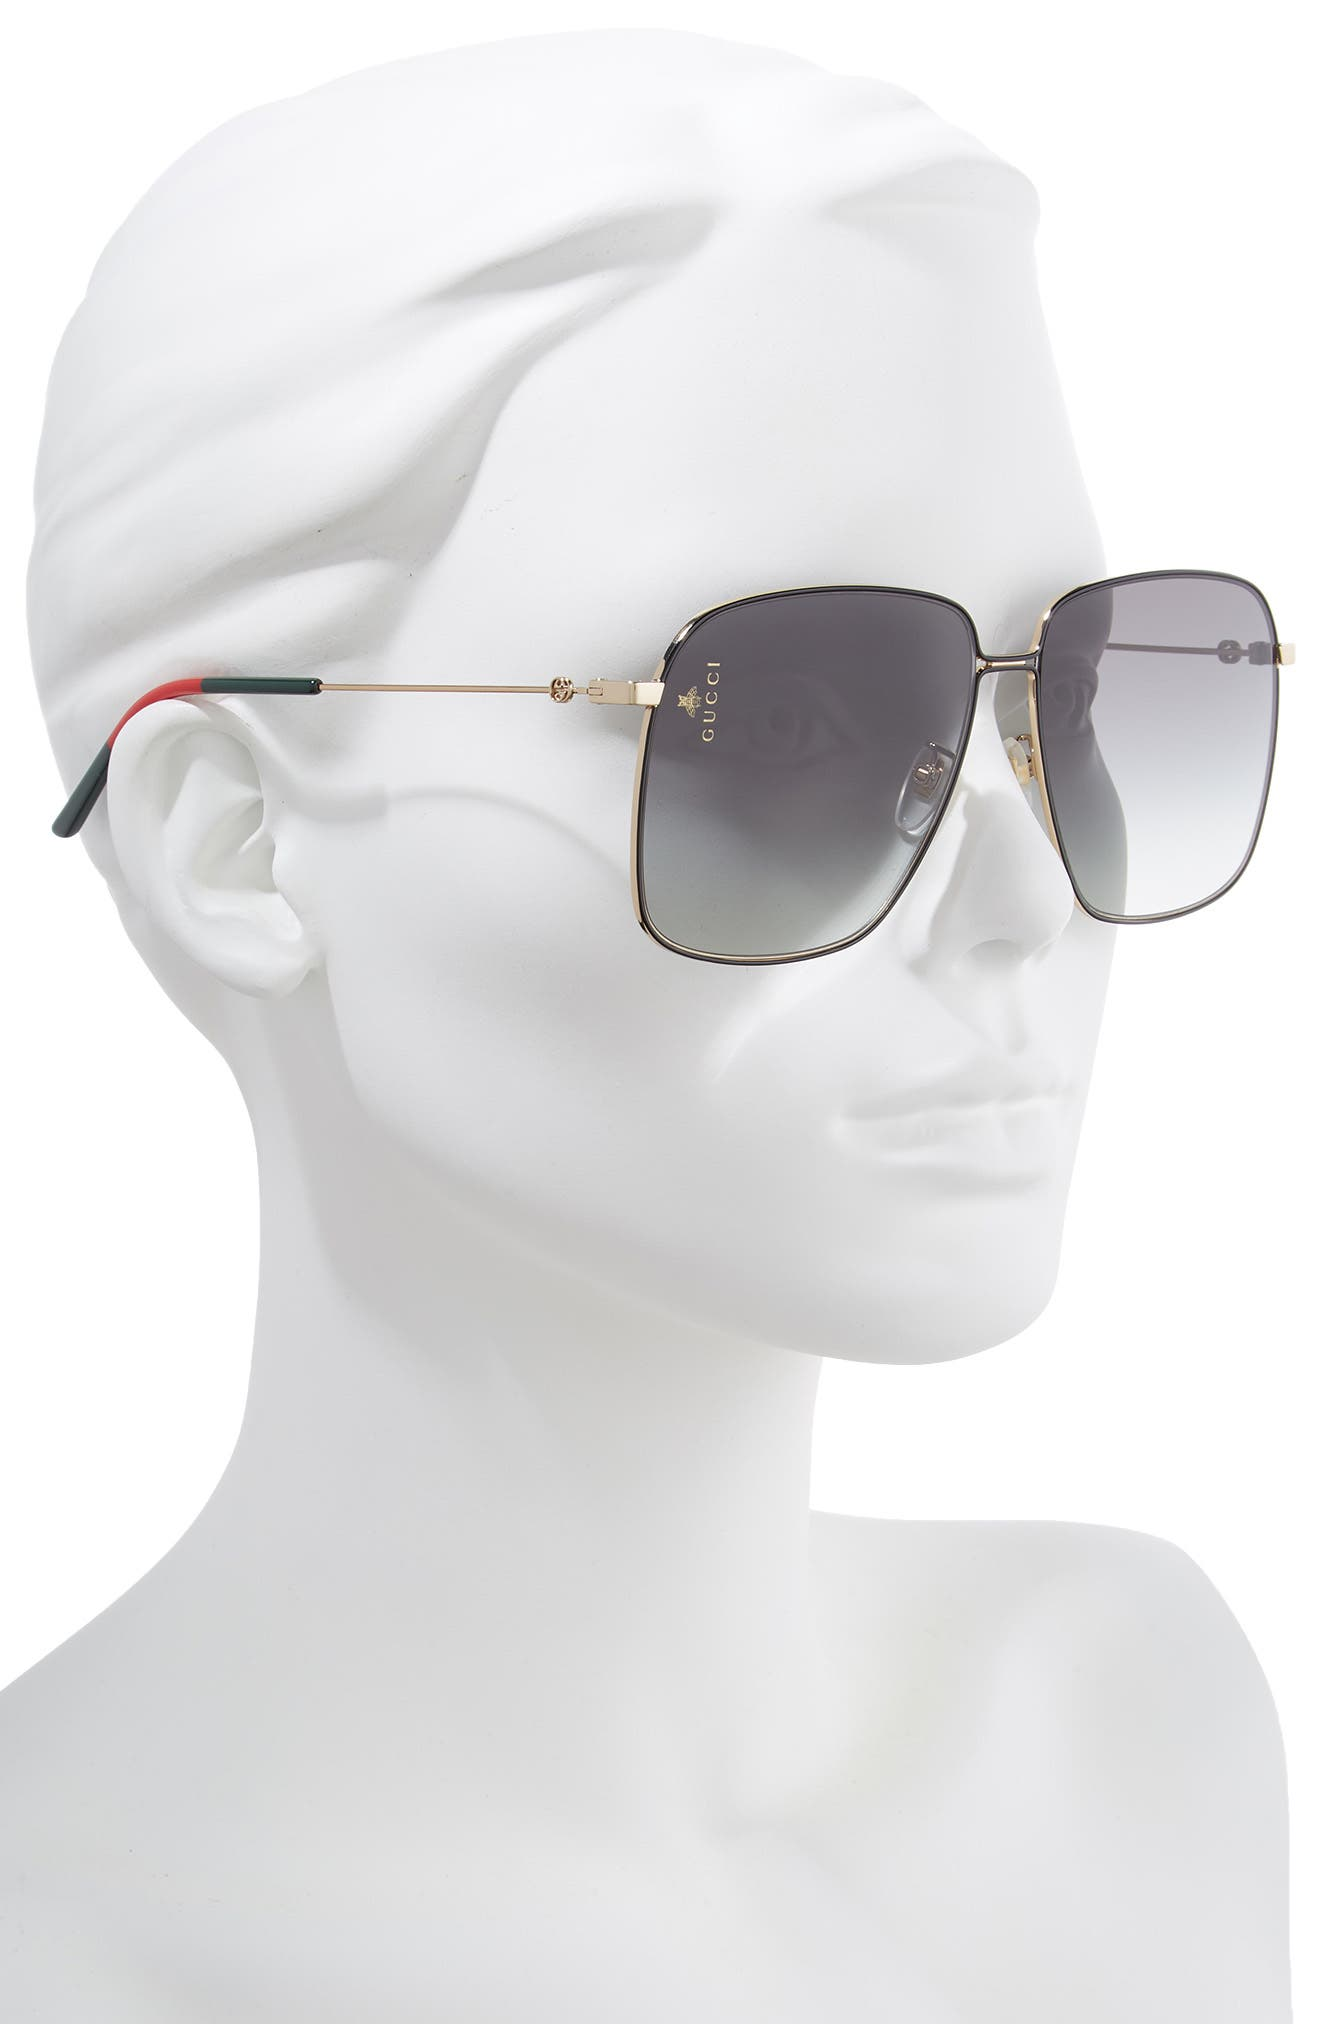 GUCCI,                             61mm Square Sunglasses,                             Alternate thumbnail 2, color,                             GOLD/GREEN/RED/GREY GRADIENT